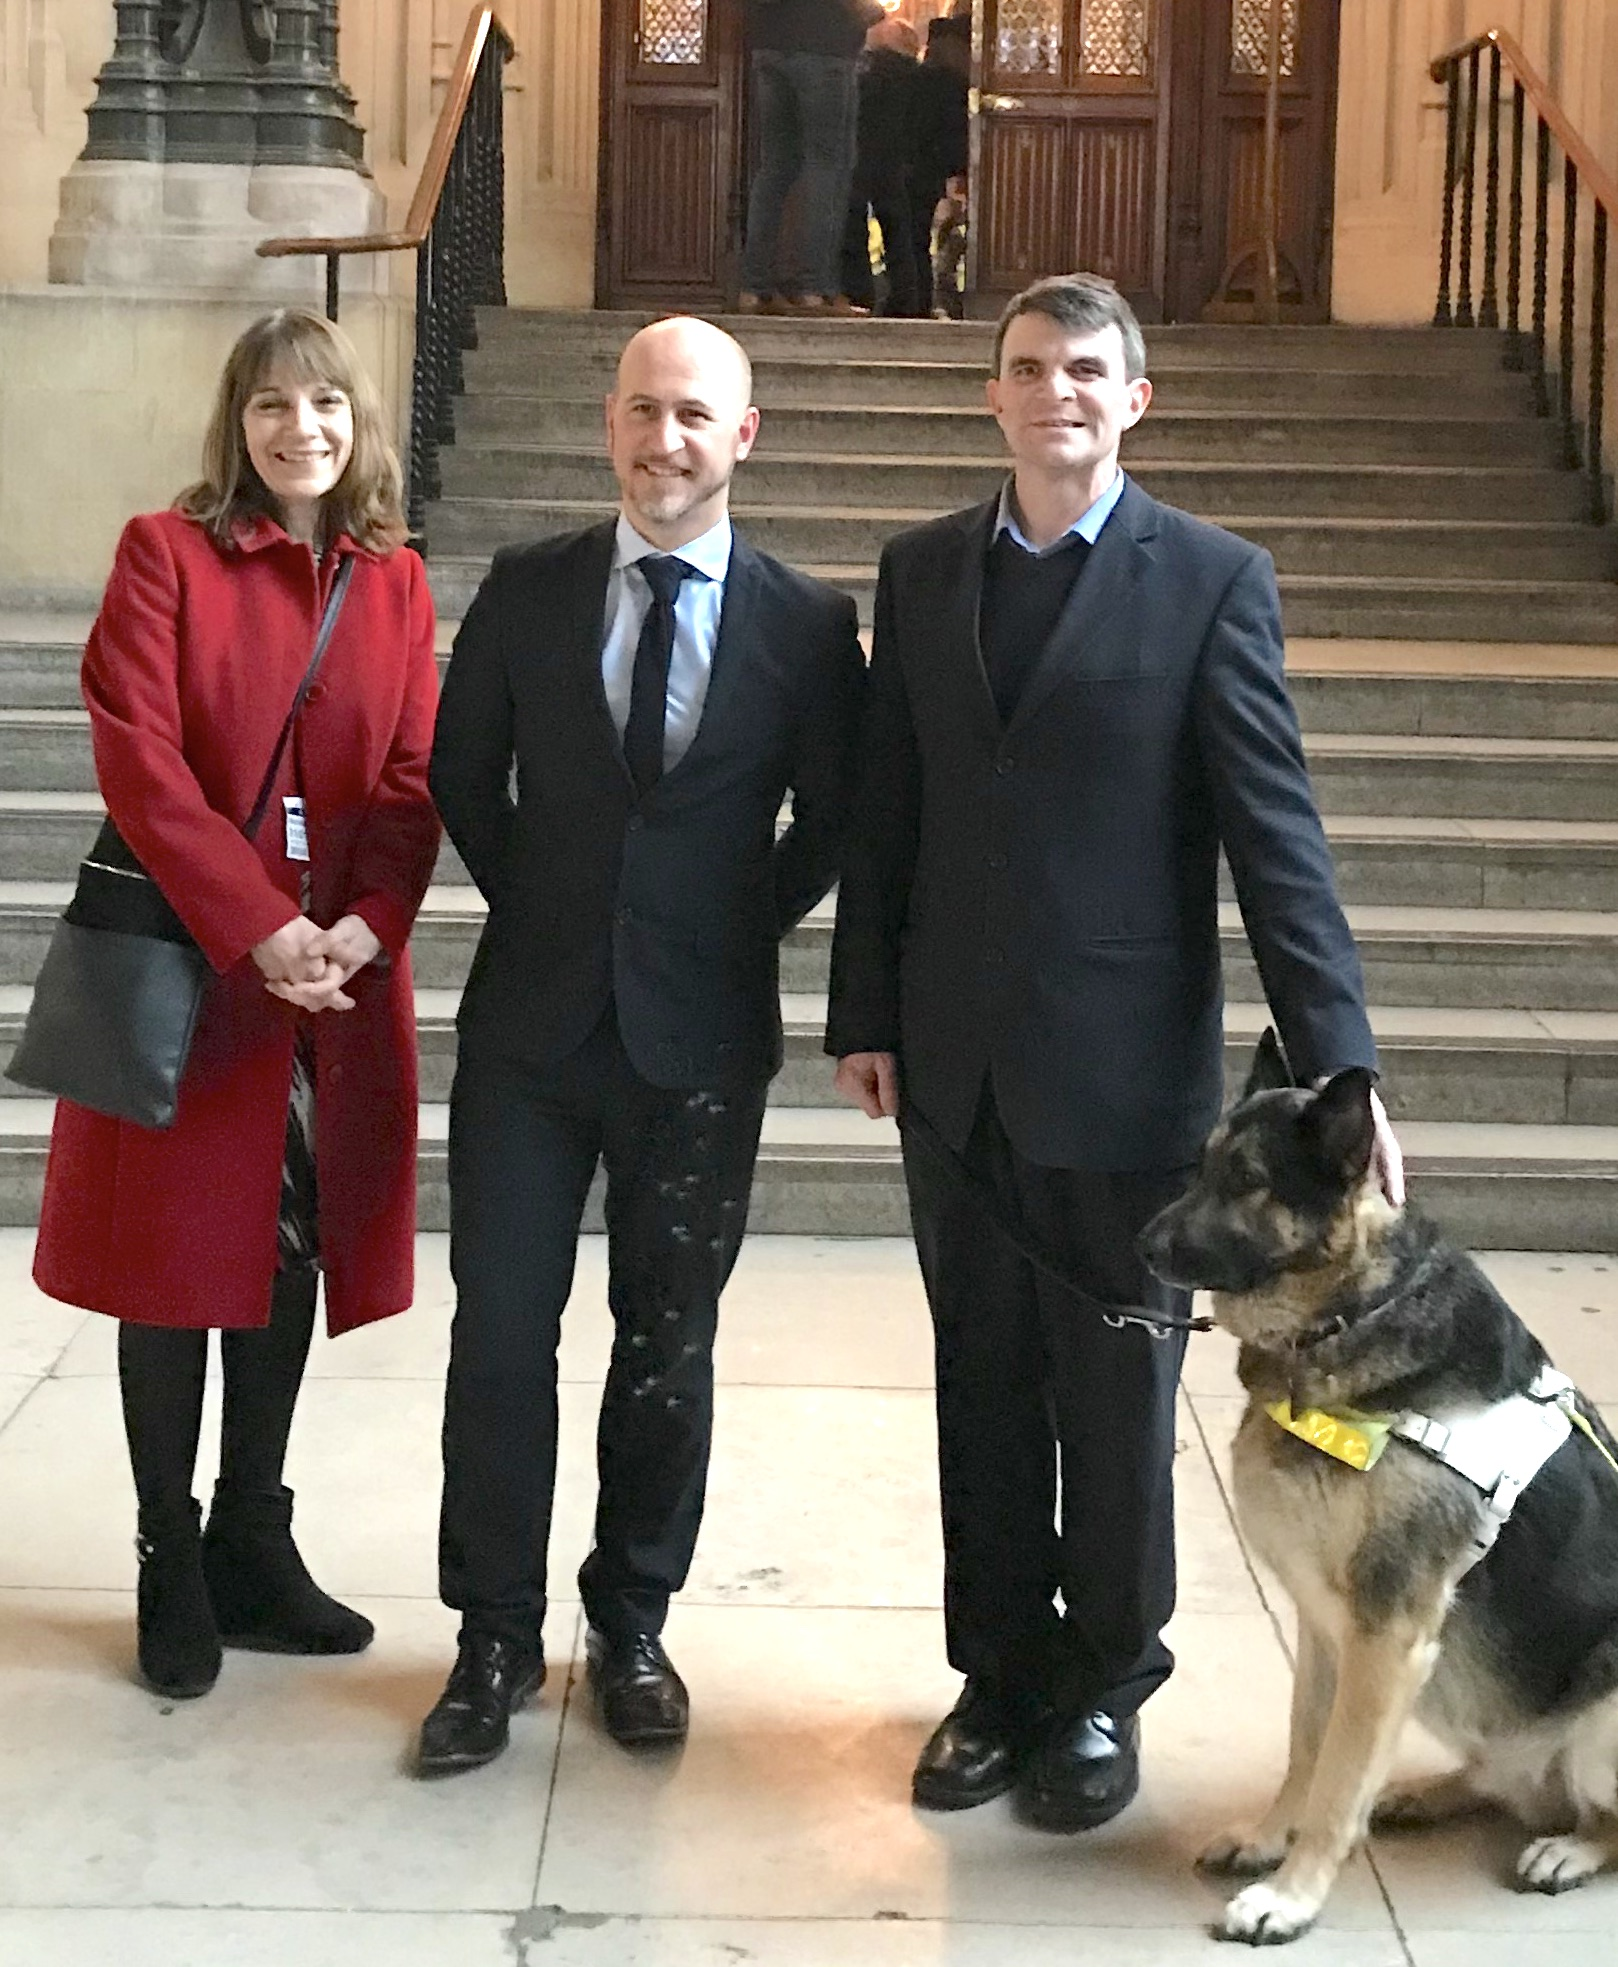 Robin Christopherson with Tracey Johnson and Hector Minto at the House of Commons Select Committee on 31 January 2018